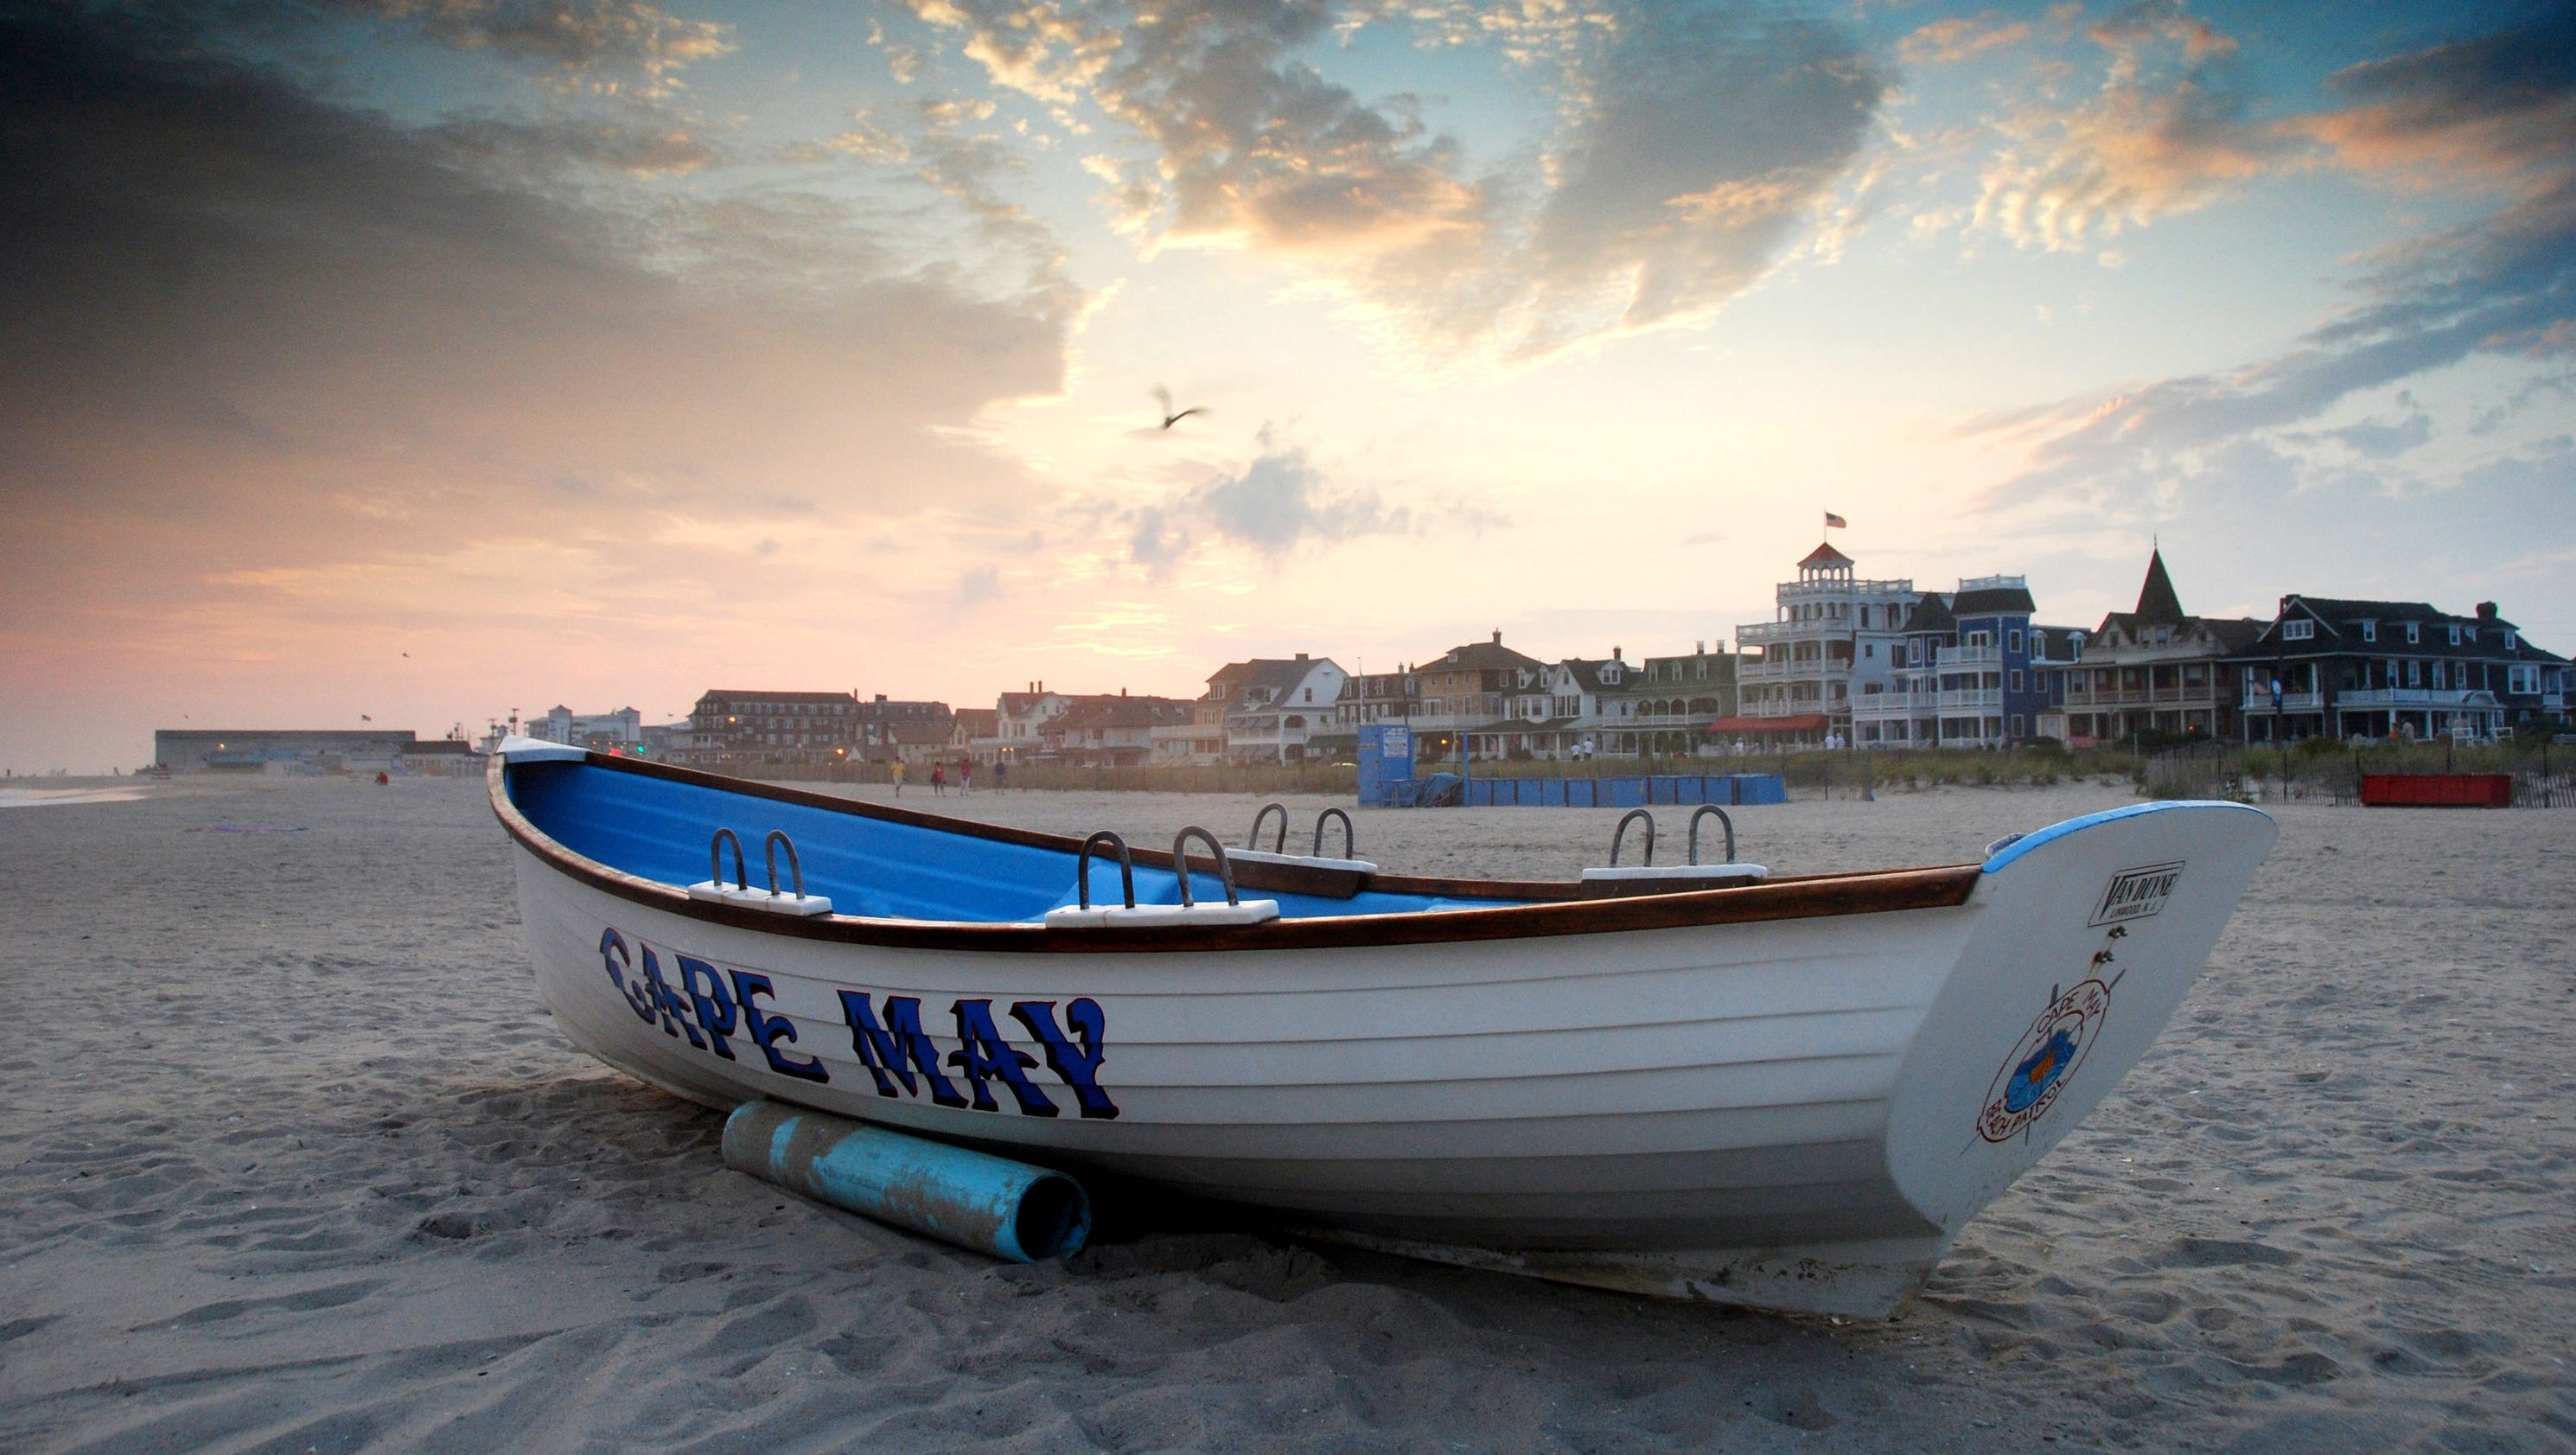 the best beaches in new jersey